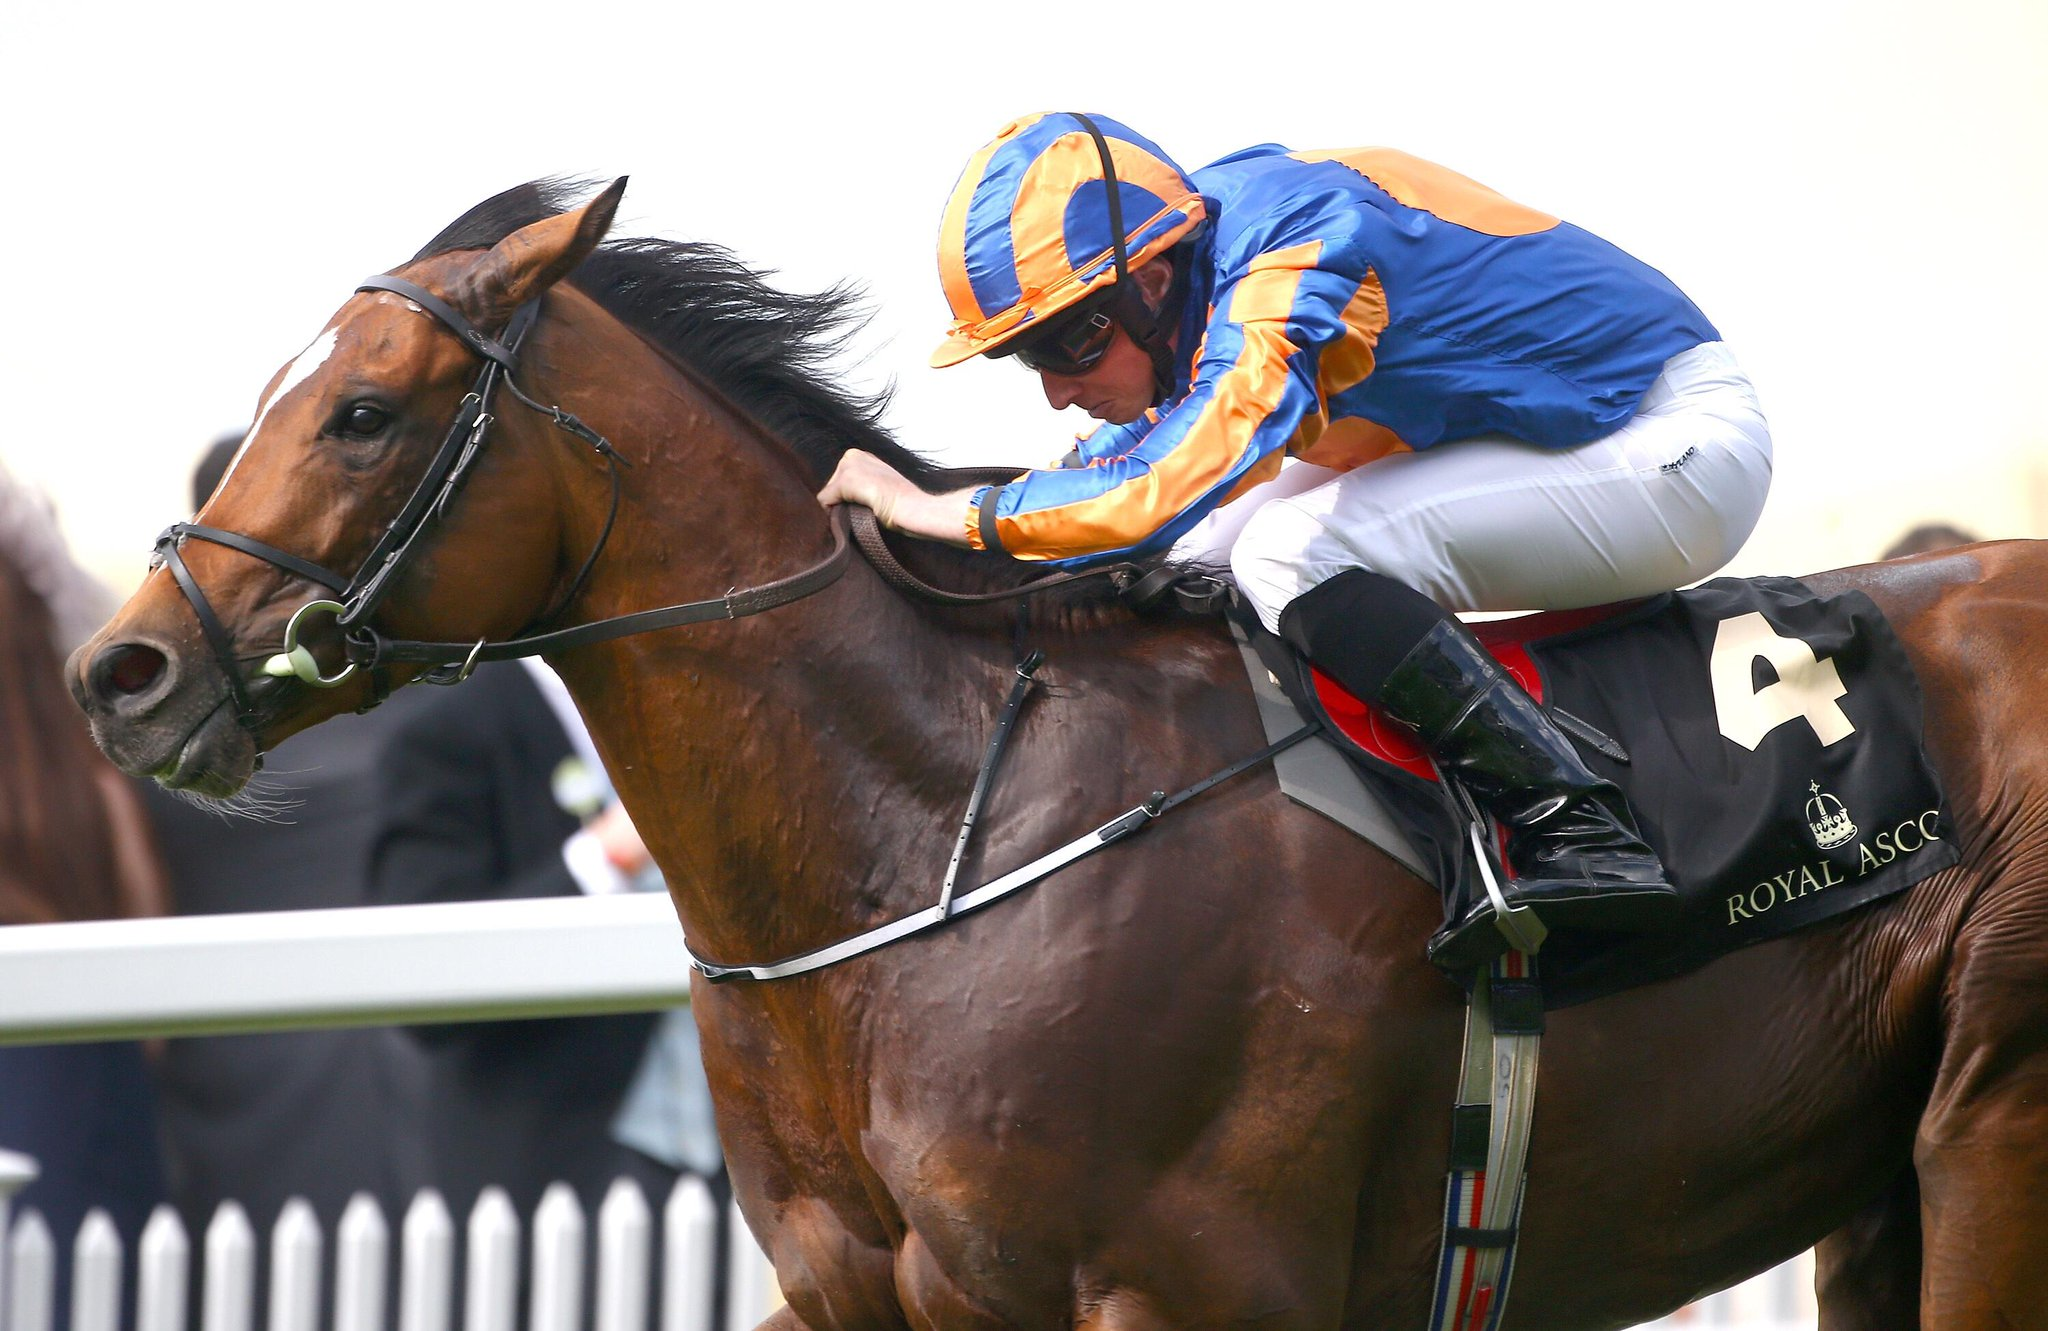 """Aidan O'Brien on Gleneagles: """"If he was going to go to the Classic then he had to run, we'll see how he is."""" #BC15 http://t.co/qnGdEifBSs"""